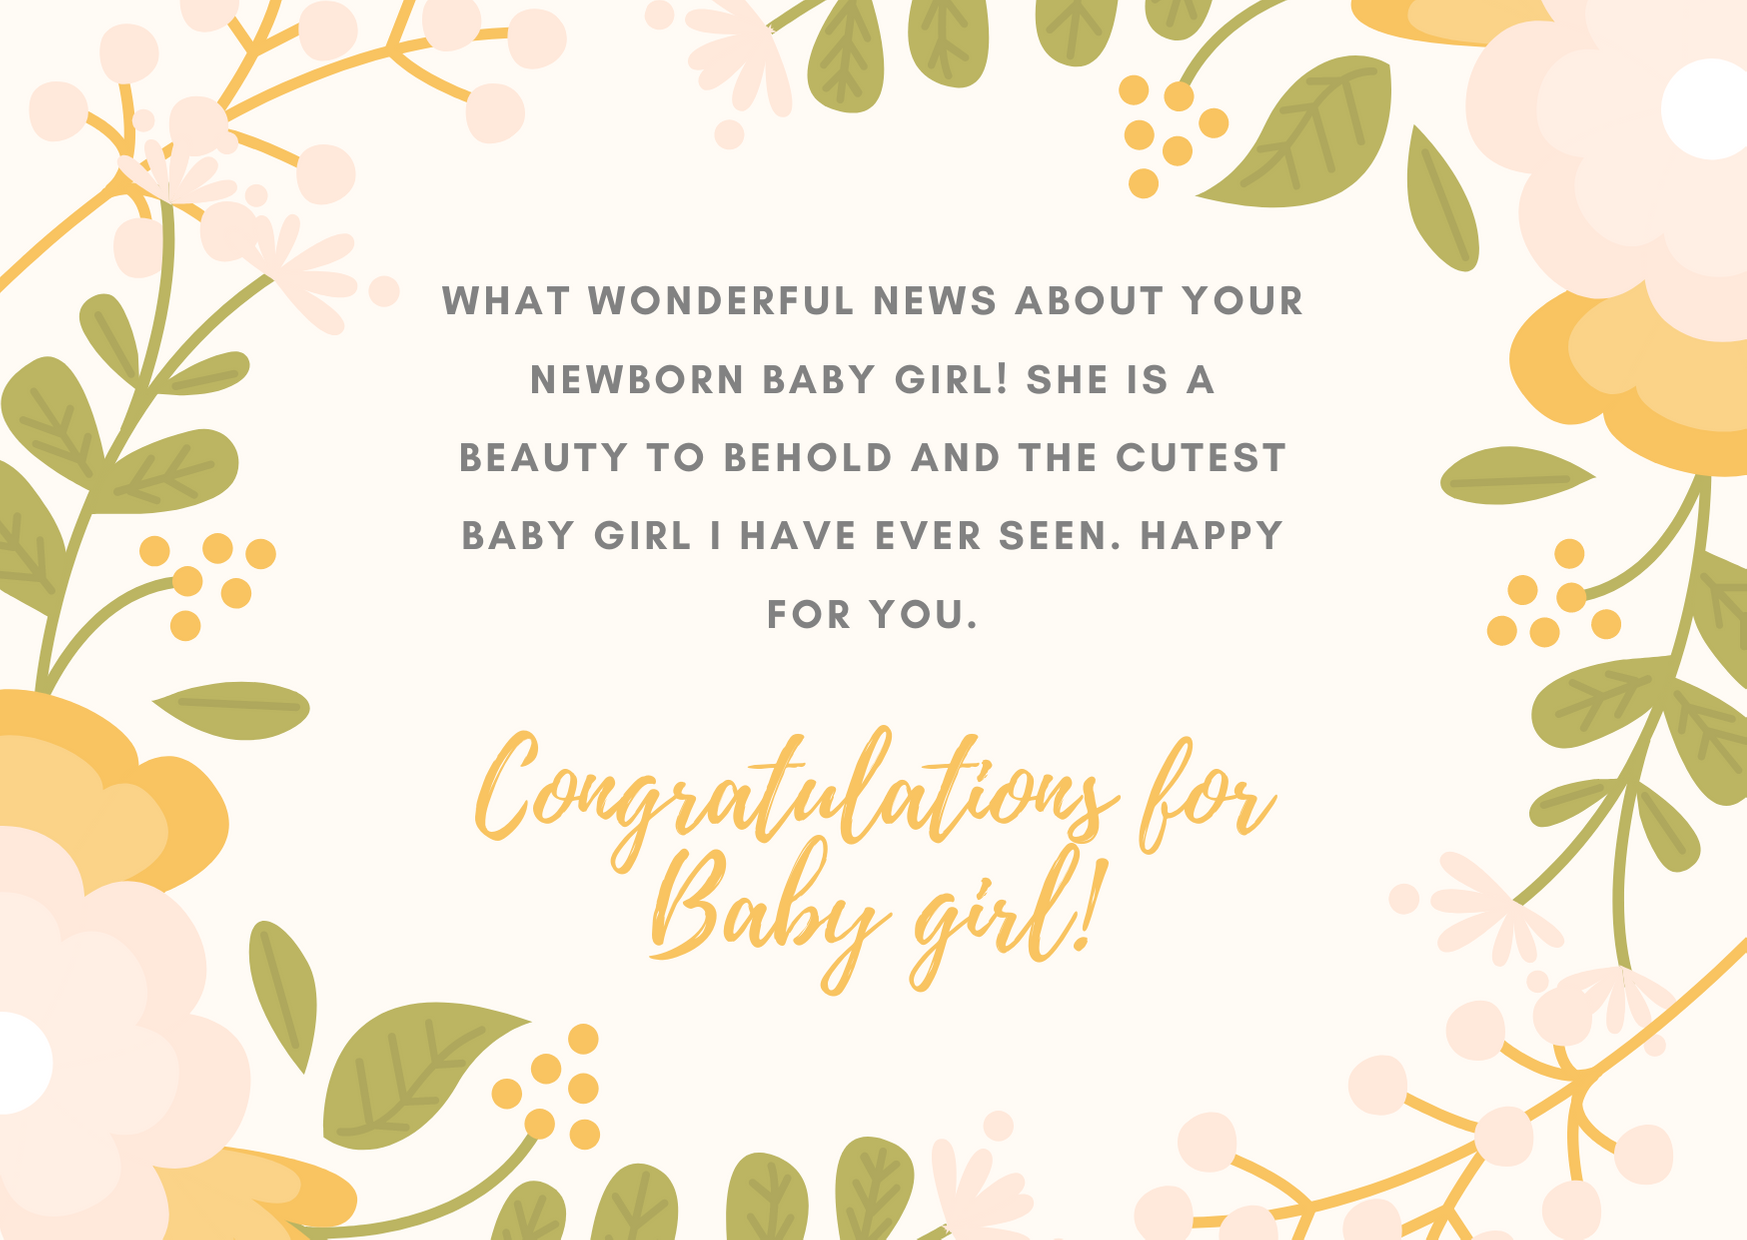 congratulations wishes for baby girl